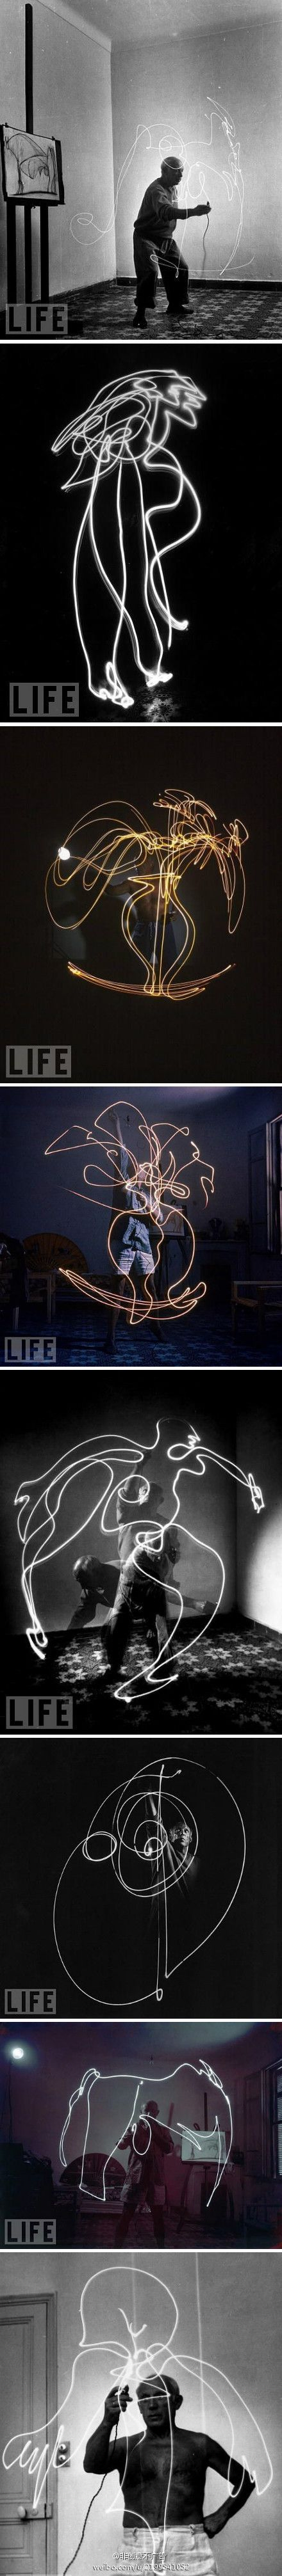 "Pablo Picasso ""draws"" in the air with light, 1949. Photography by Gjon Mili. S)"